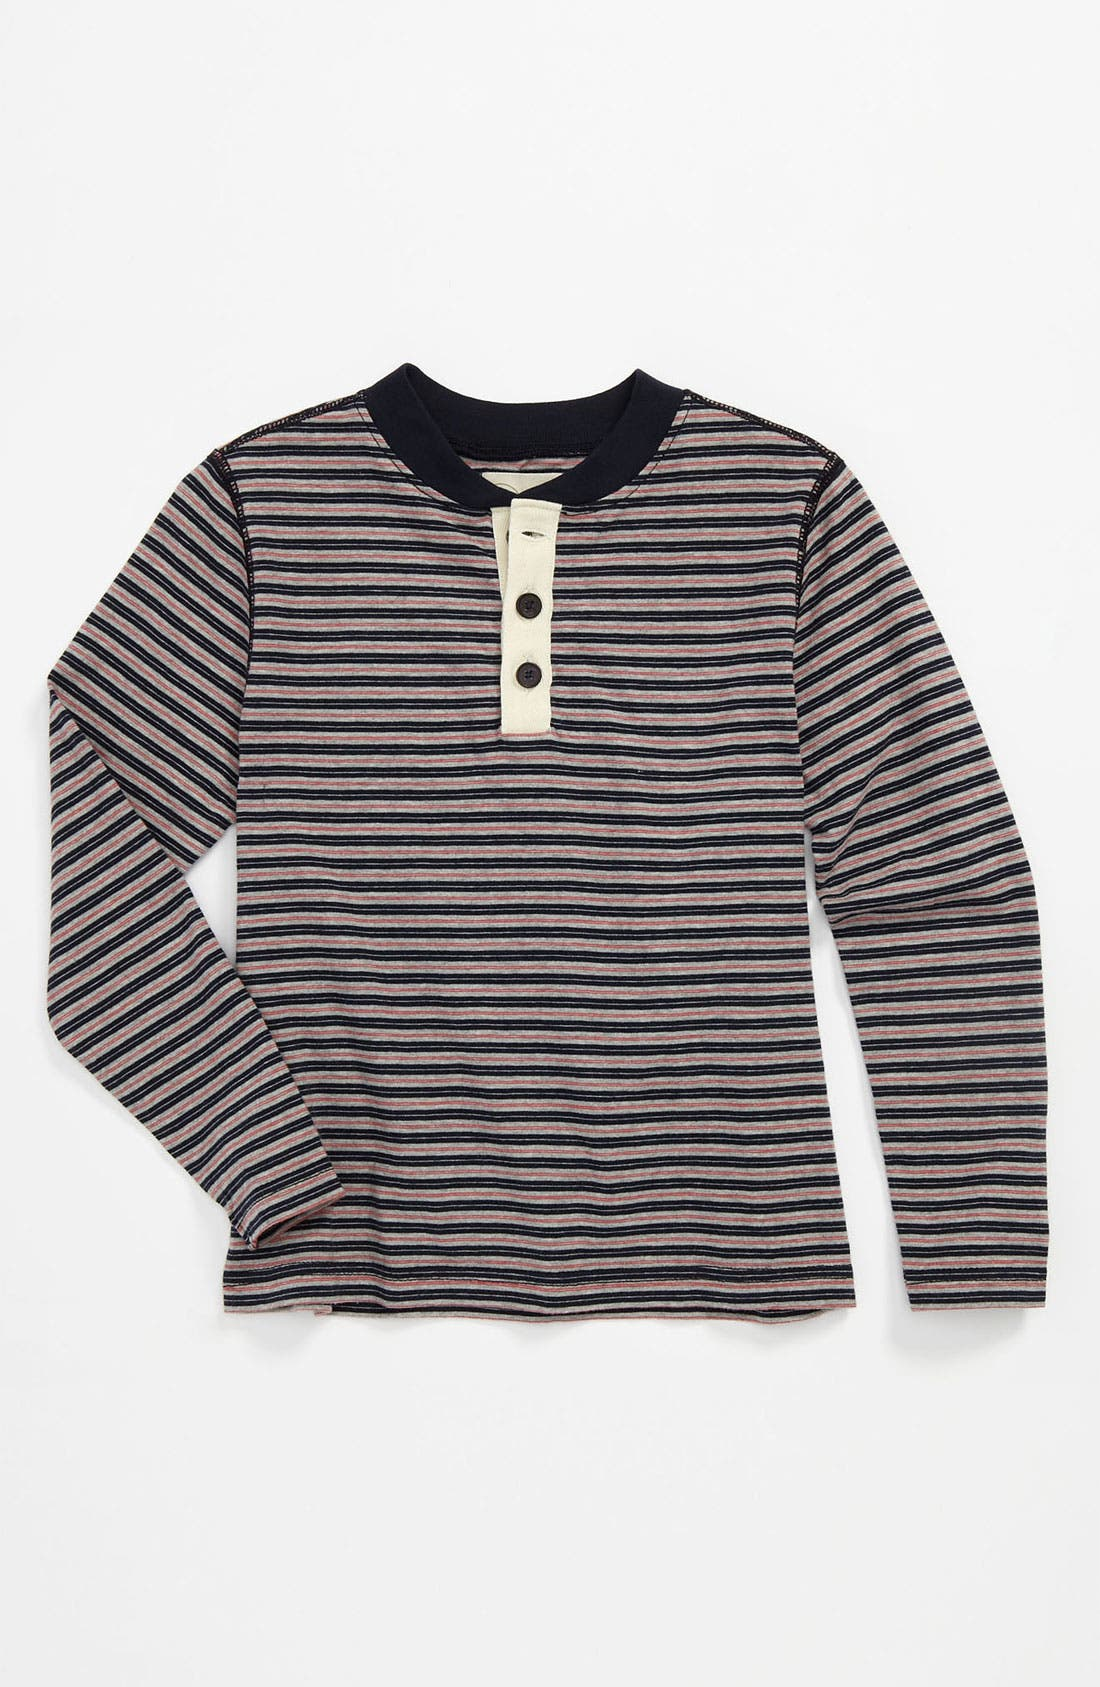 Main Image - Peek 'Rawley' Stripe Henley (Little Boys & Big Boys)